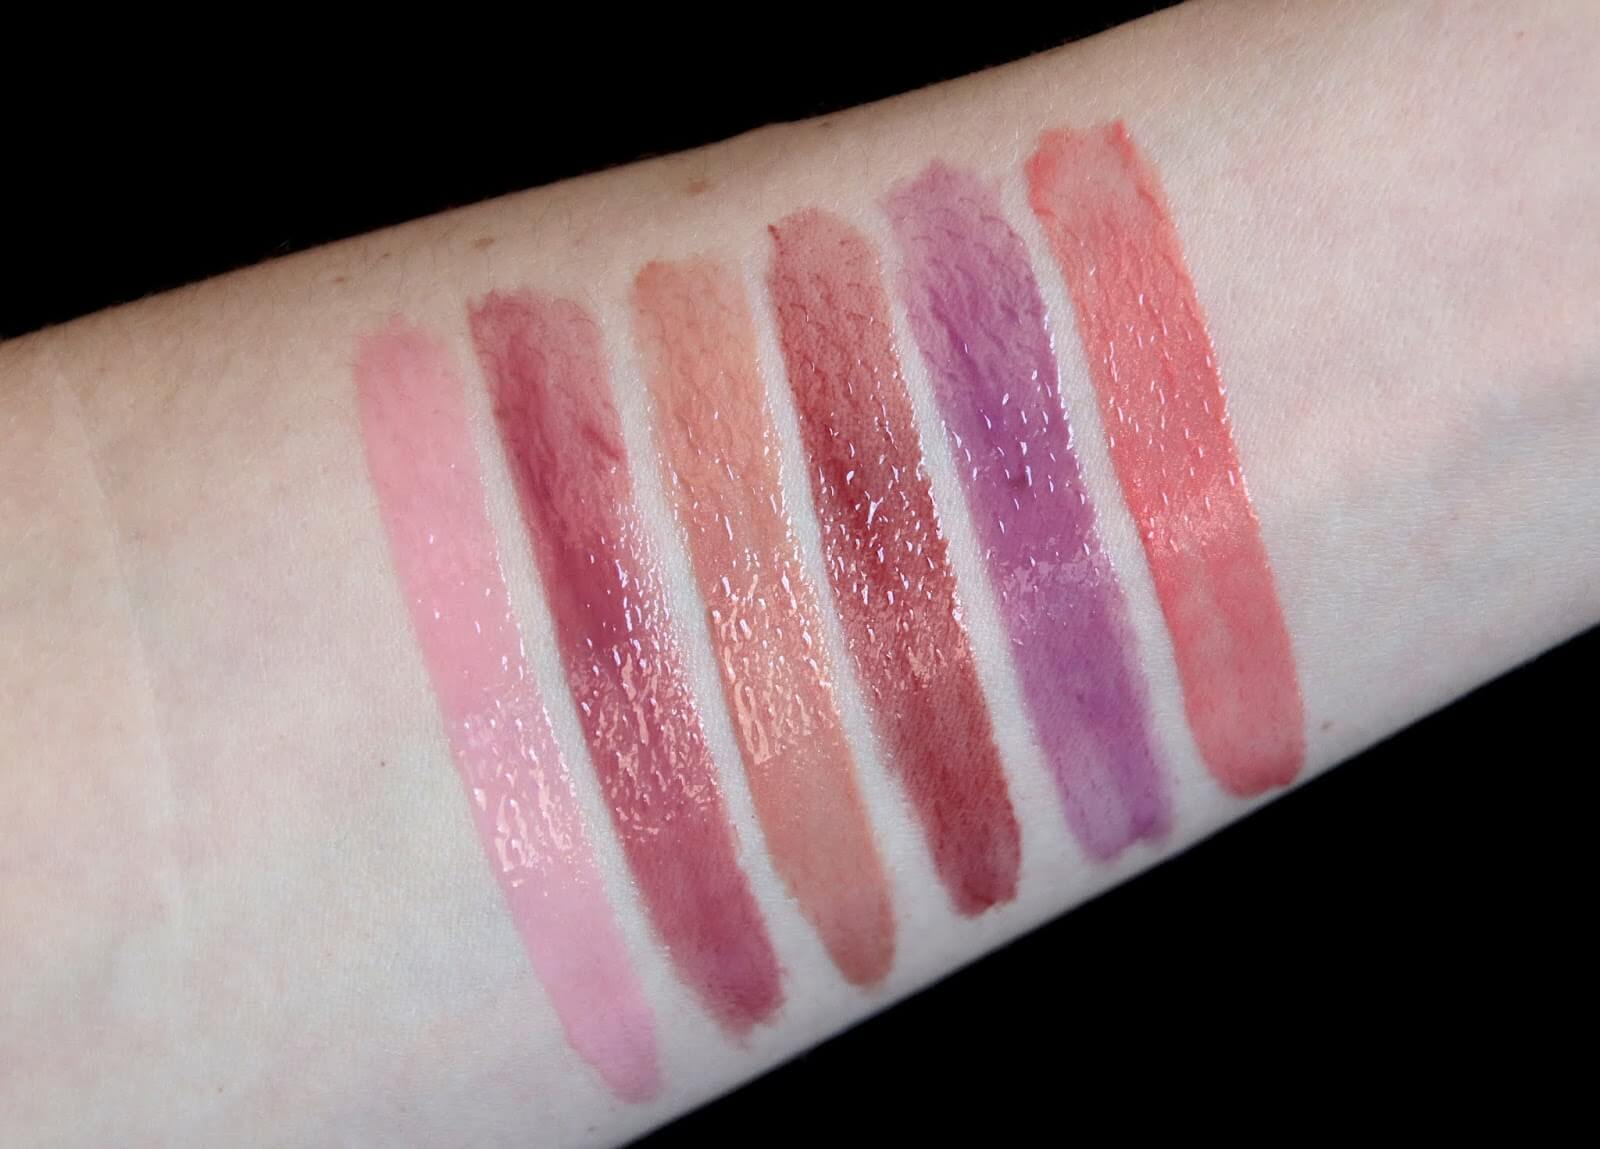 Givenchy Rose Perfecto 001 14 1917 22 23 swatch